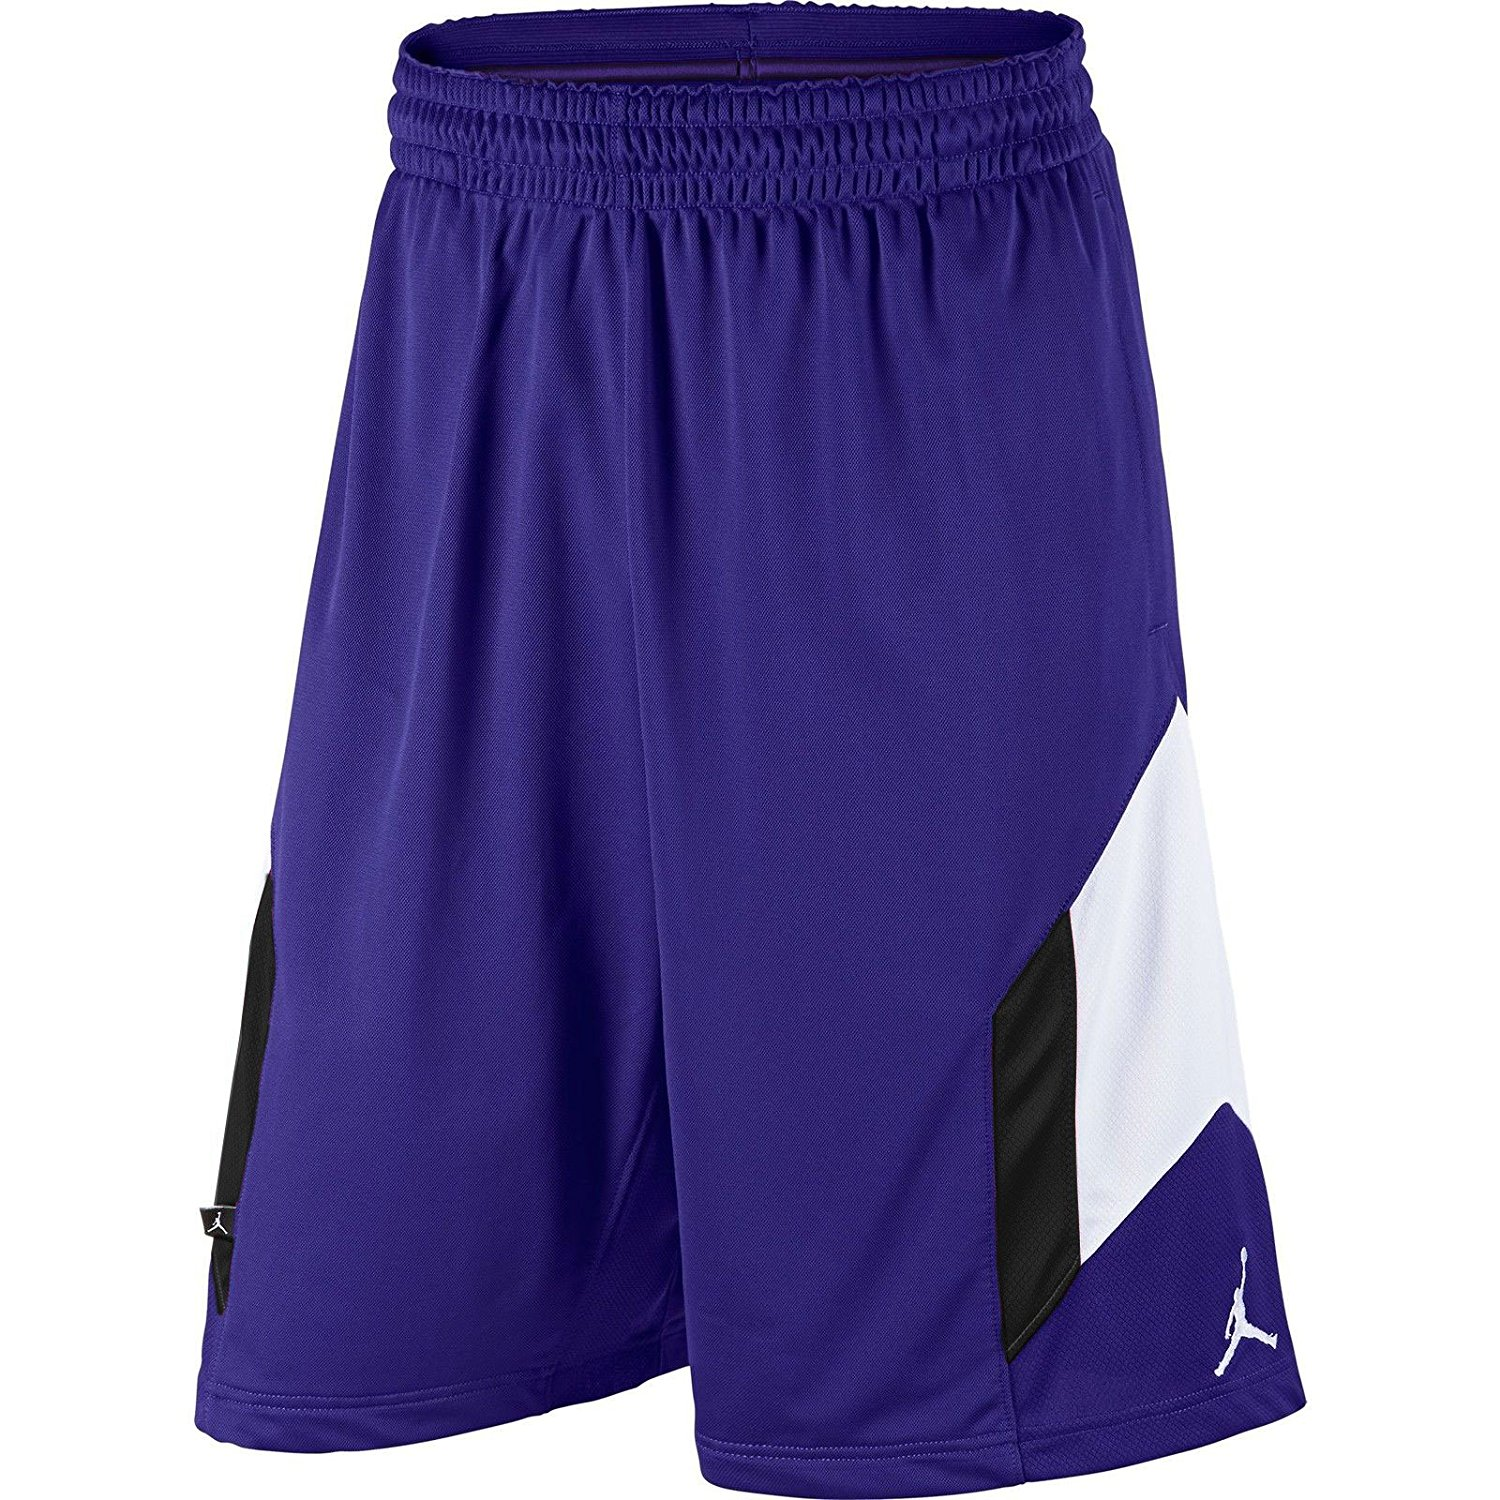 eab85f7e02e Get Quotations · Air Jordan Rise 3 Men's Basketball Shorts  Purple/White/Black 612853-423